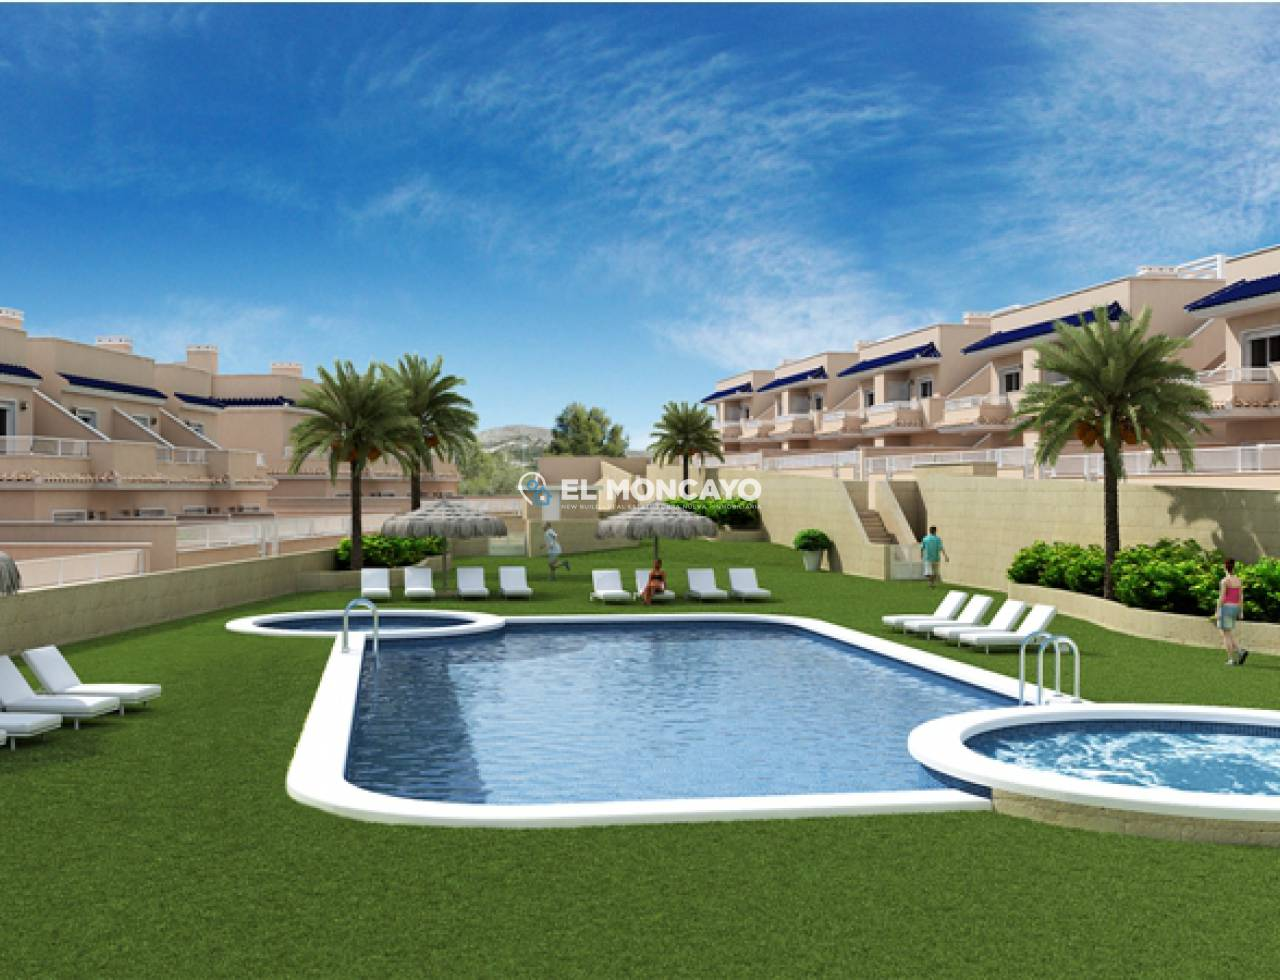 New build bungalow in Punta Prima - Orihuela Costa - Costa Blanca south 138 (16)